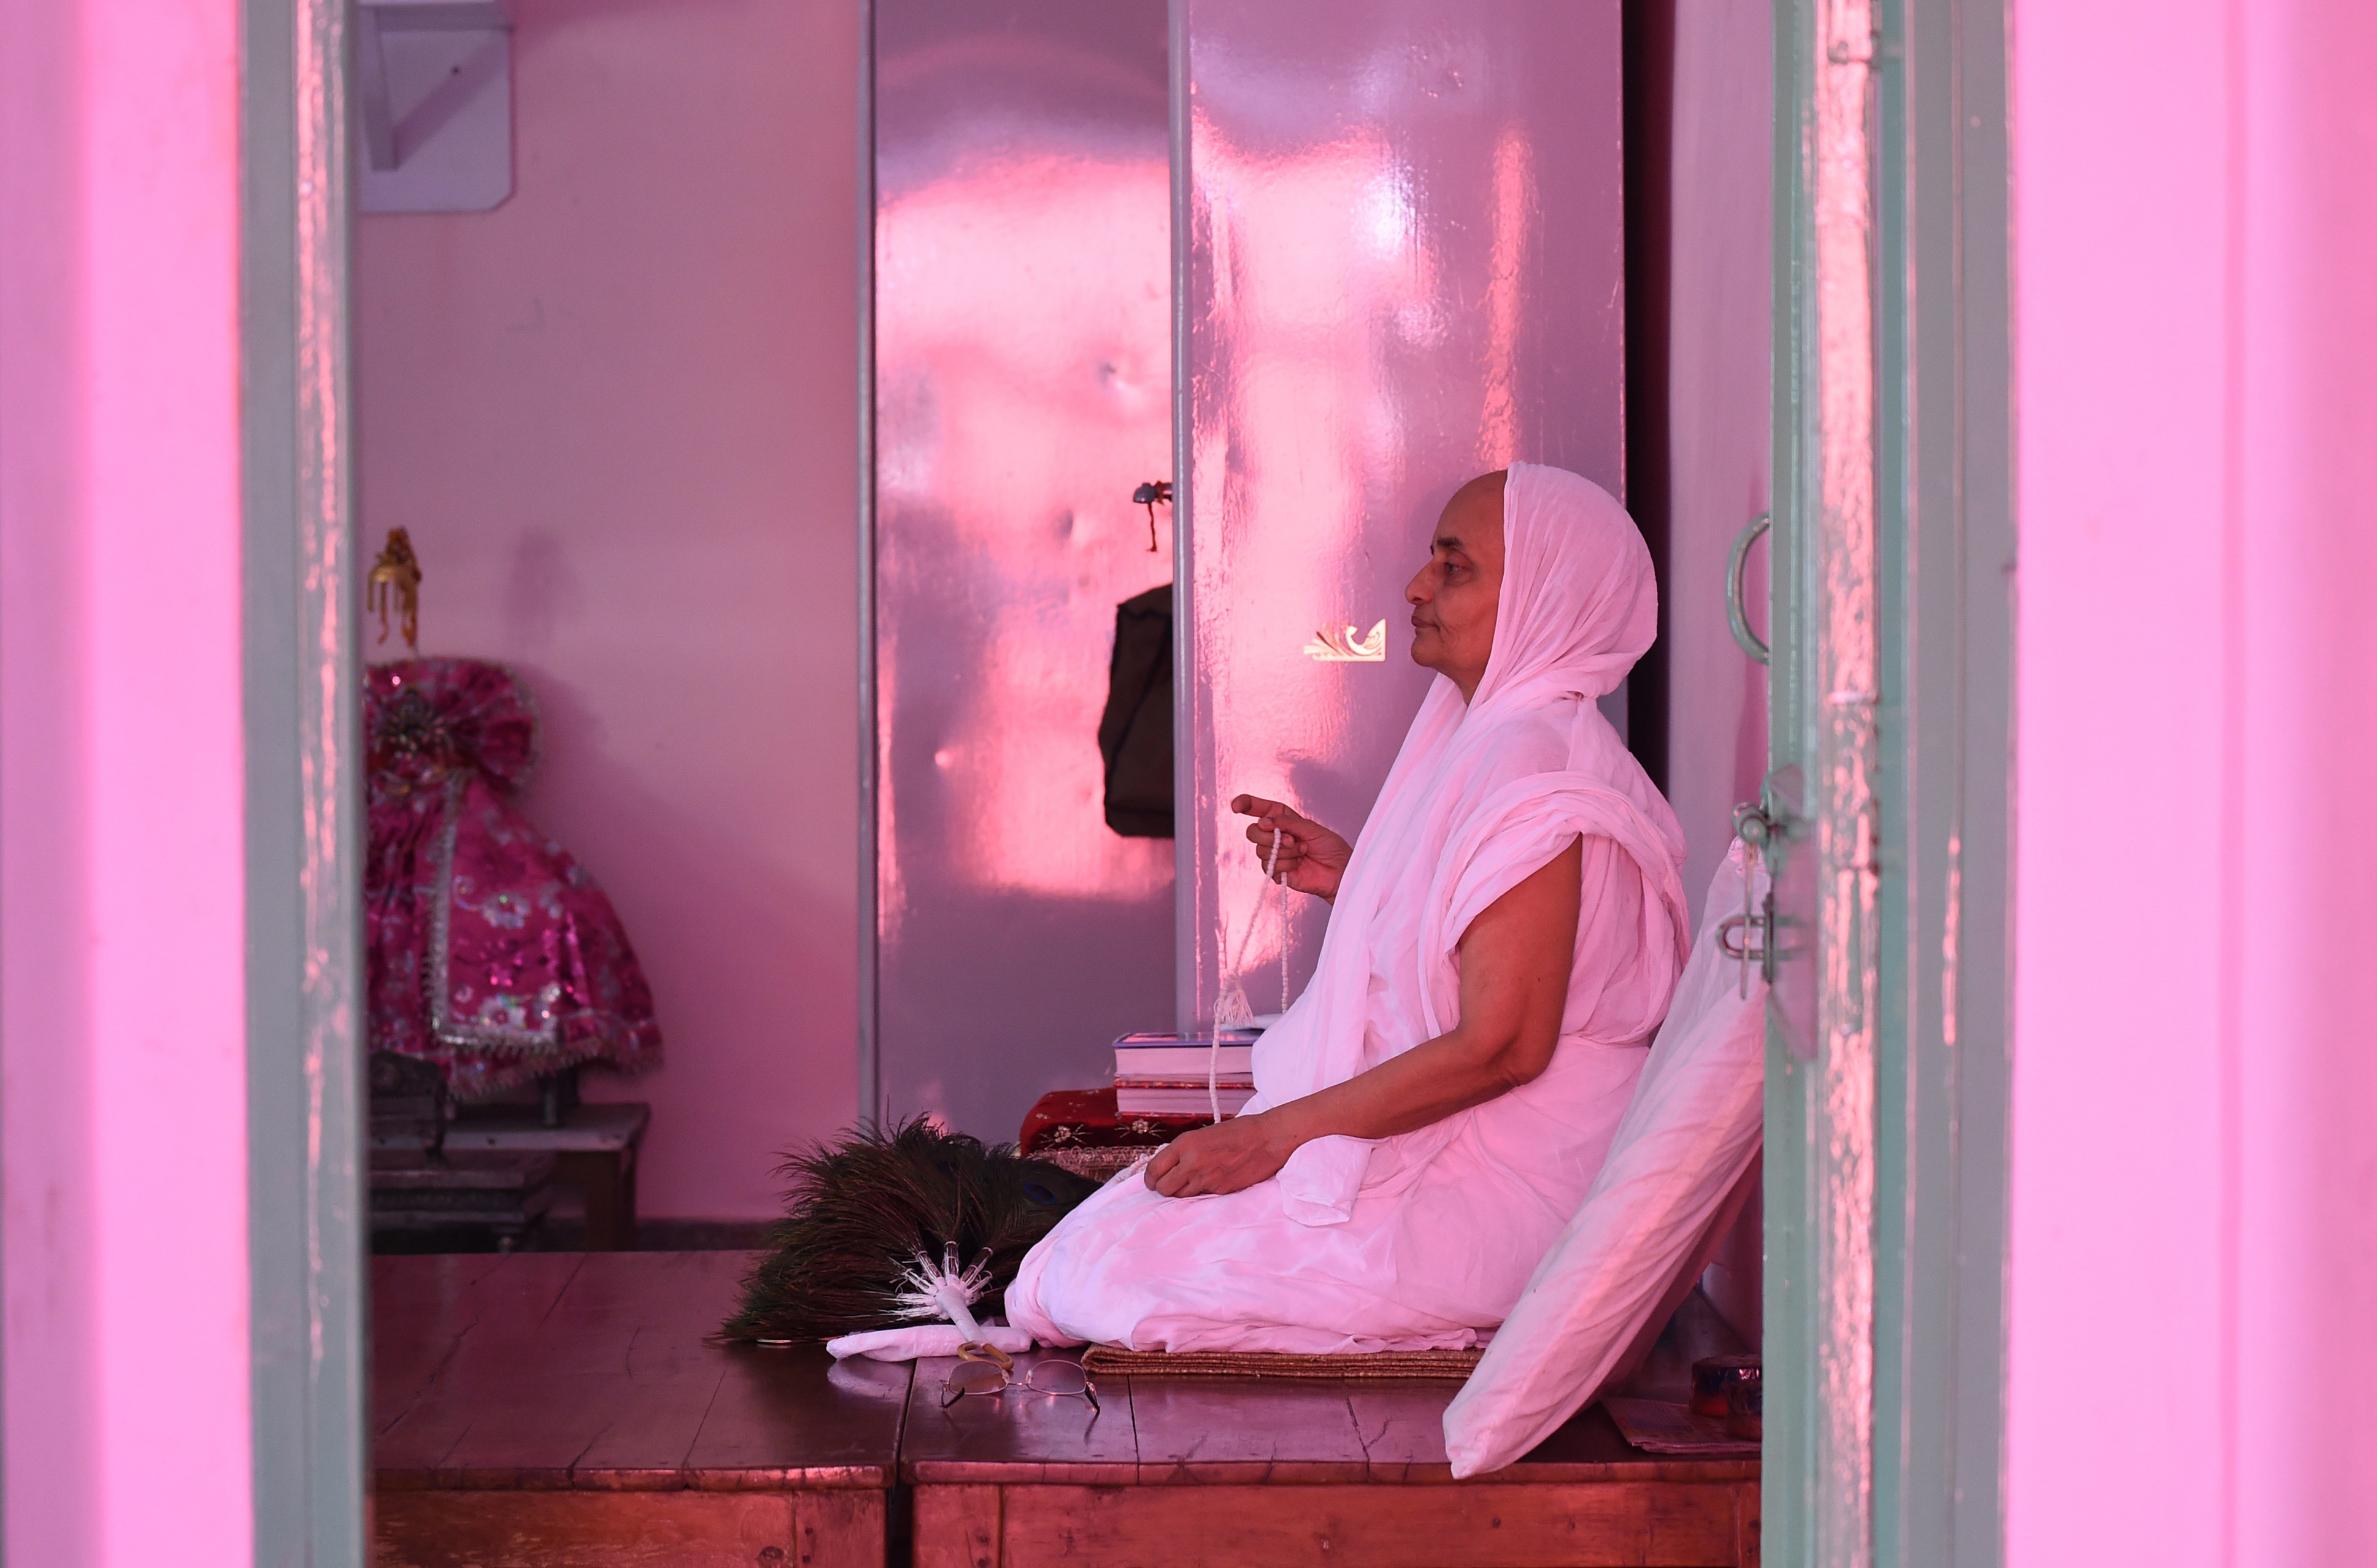 A Jain Sadhu (Jain Nun) prays in a room at the Jain Temple in the old quarters of New Delhi on August 31, 2015.